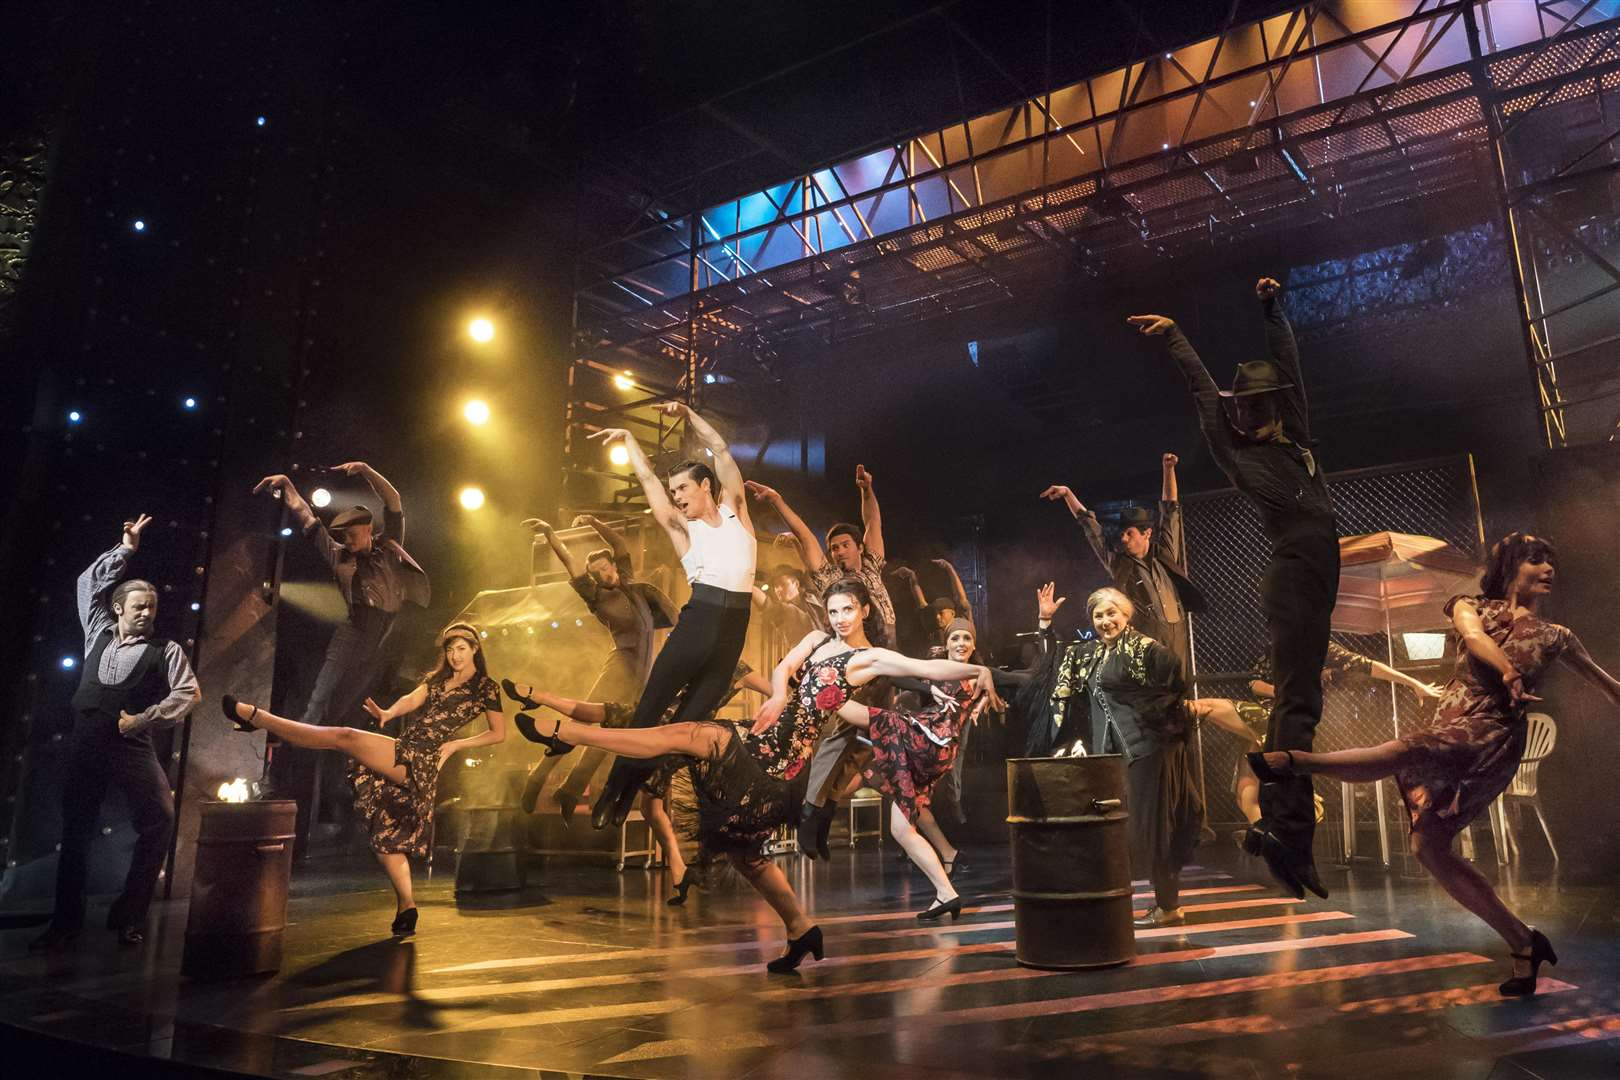 All the big dance numbers expected in a West End musical